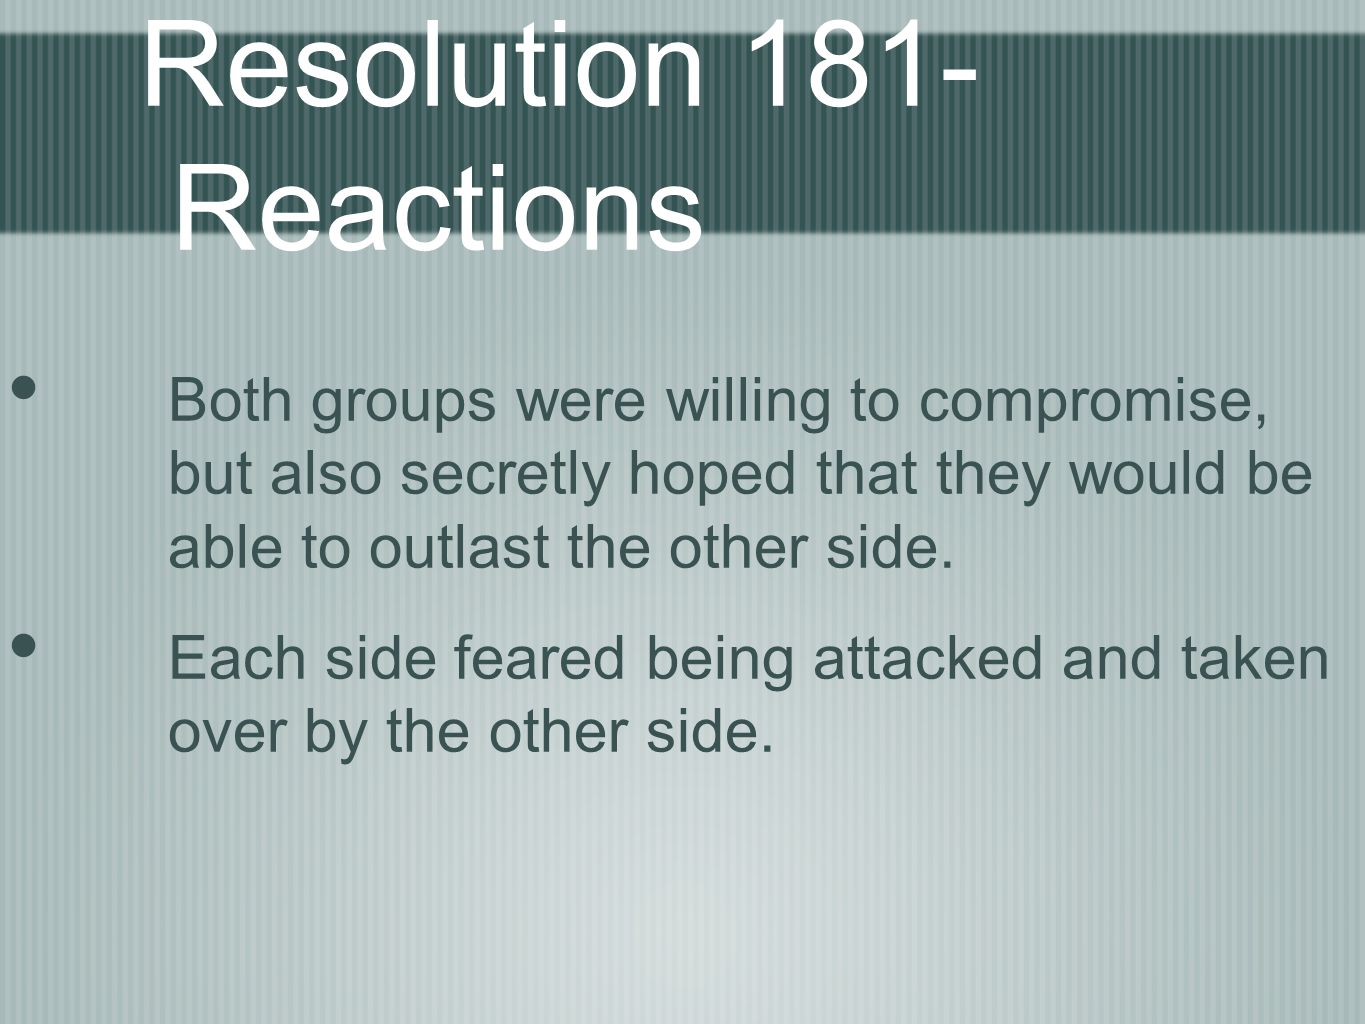 Resolution 181- Reactions Both groups were willing to compromise, but also secretly hoped that they would be able to outlast the other side.